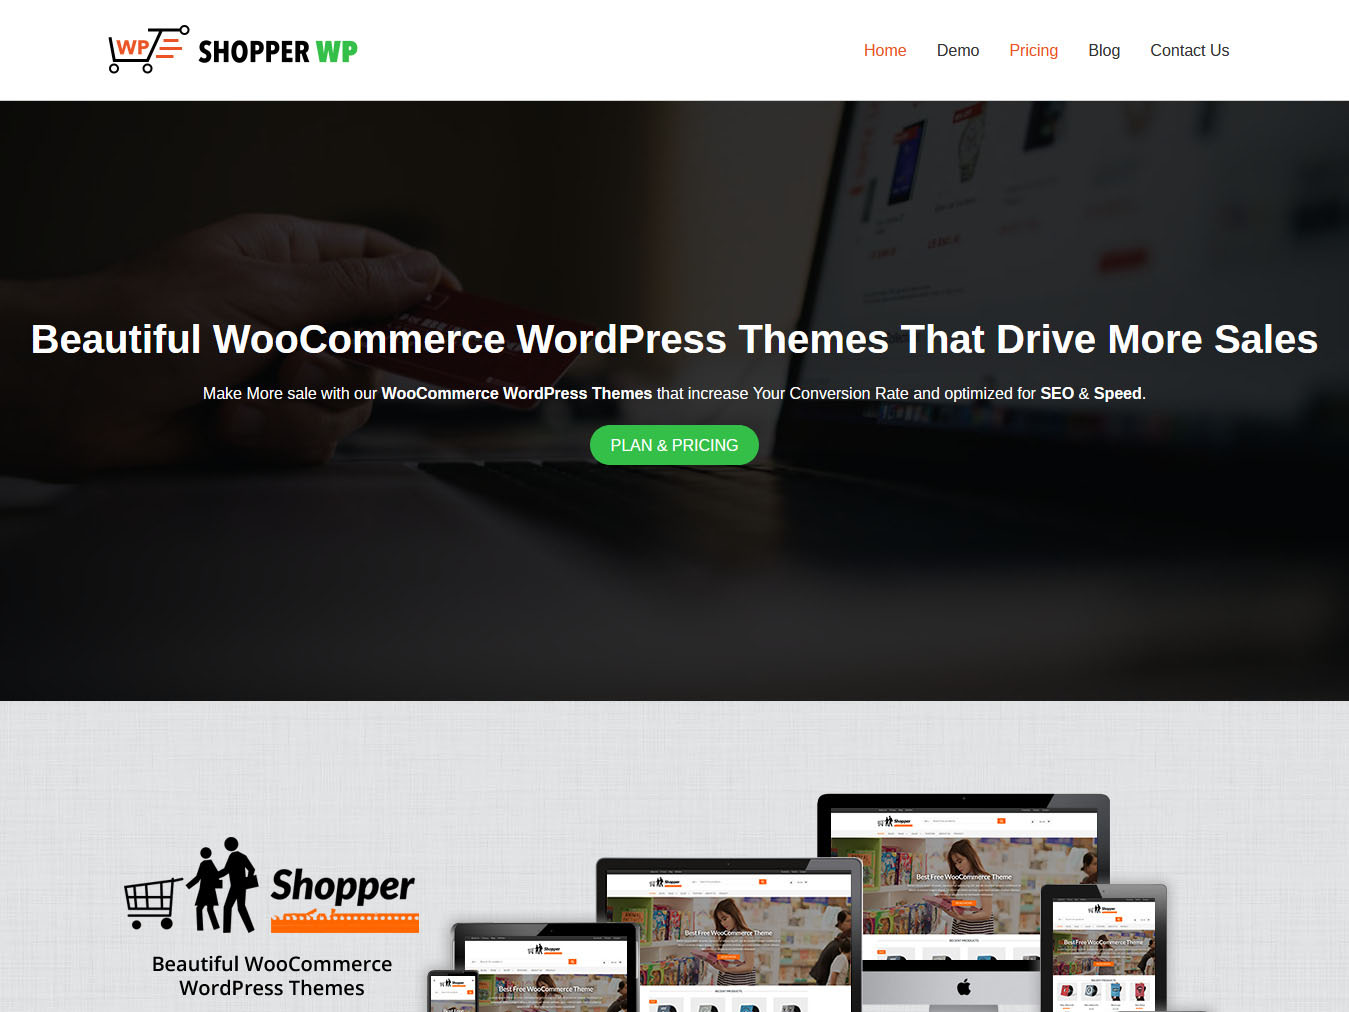 Shopper - Best Free WordPress WooCommerce Theme